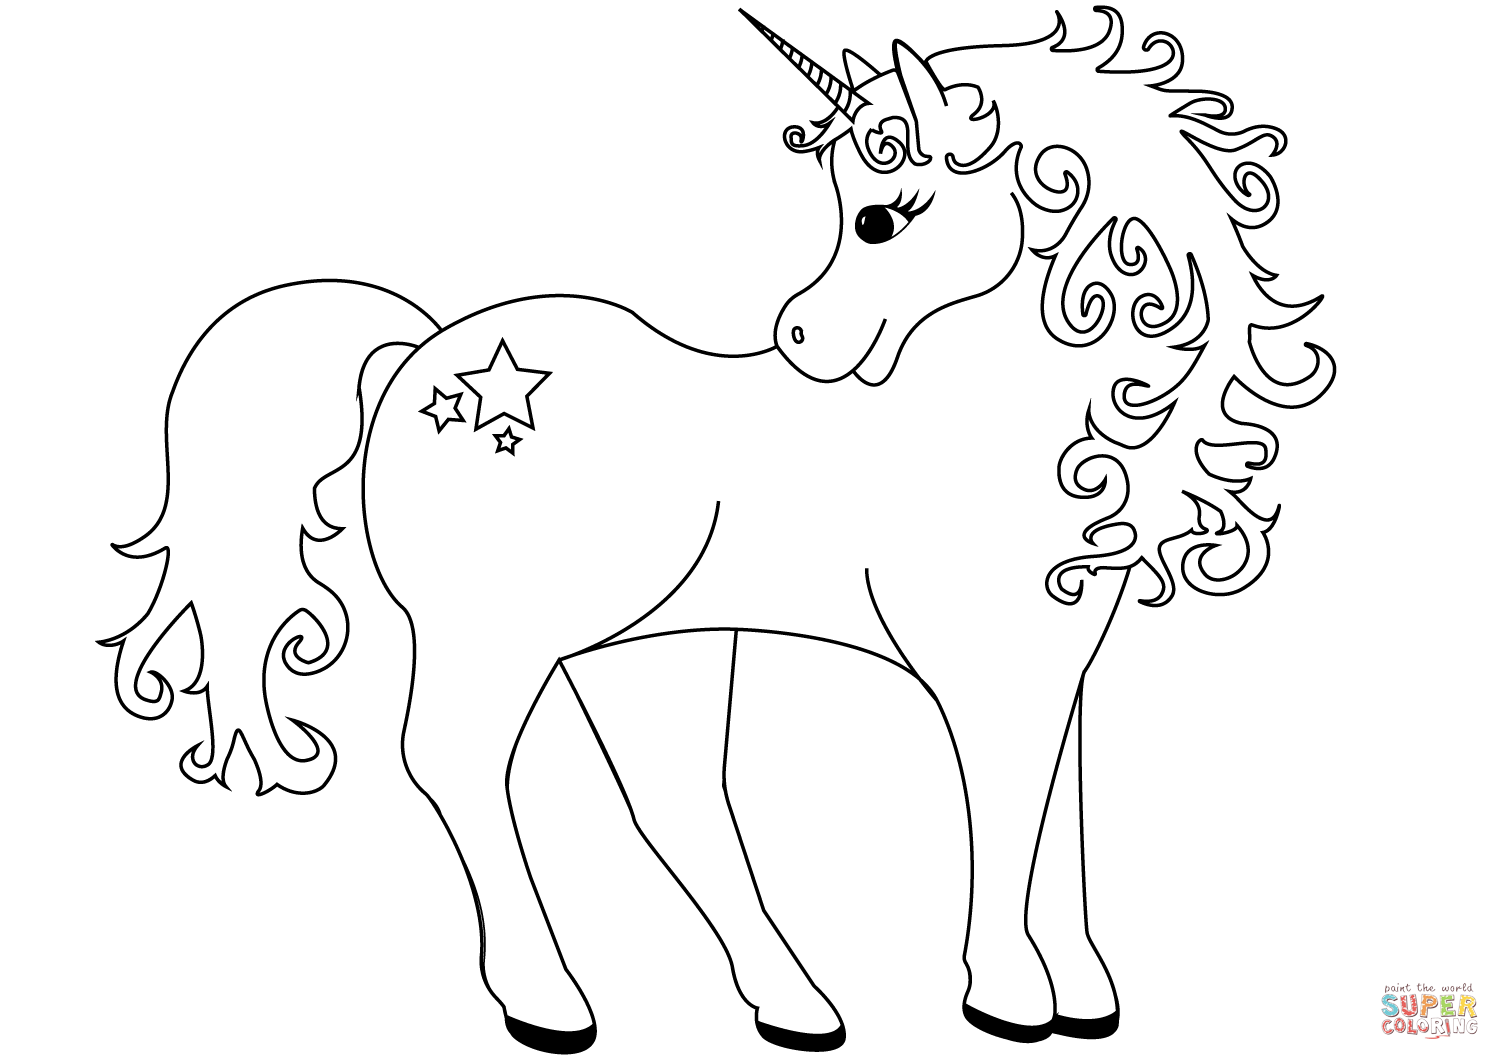 print unicorn coloring sheet unicorn printable adult coloring page from favoreads etsy unicorn print coloring sheet